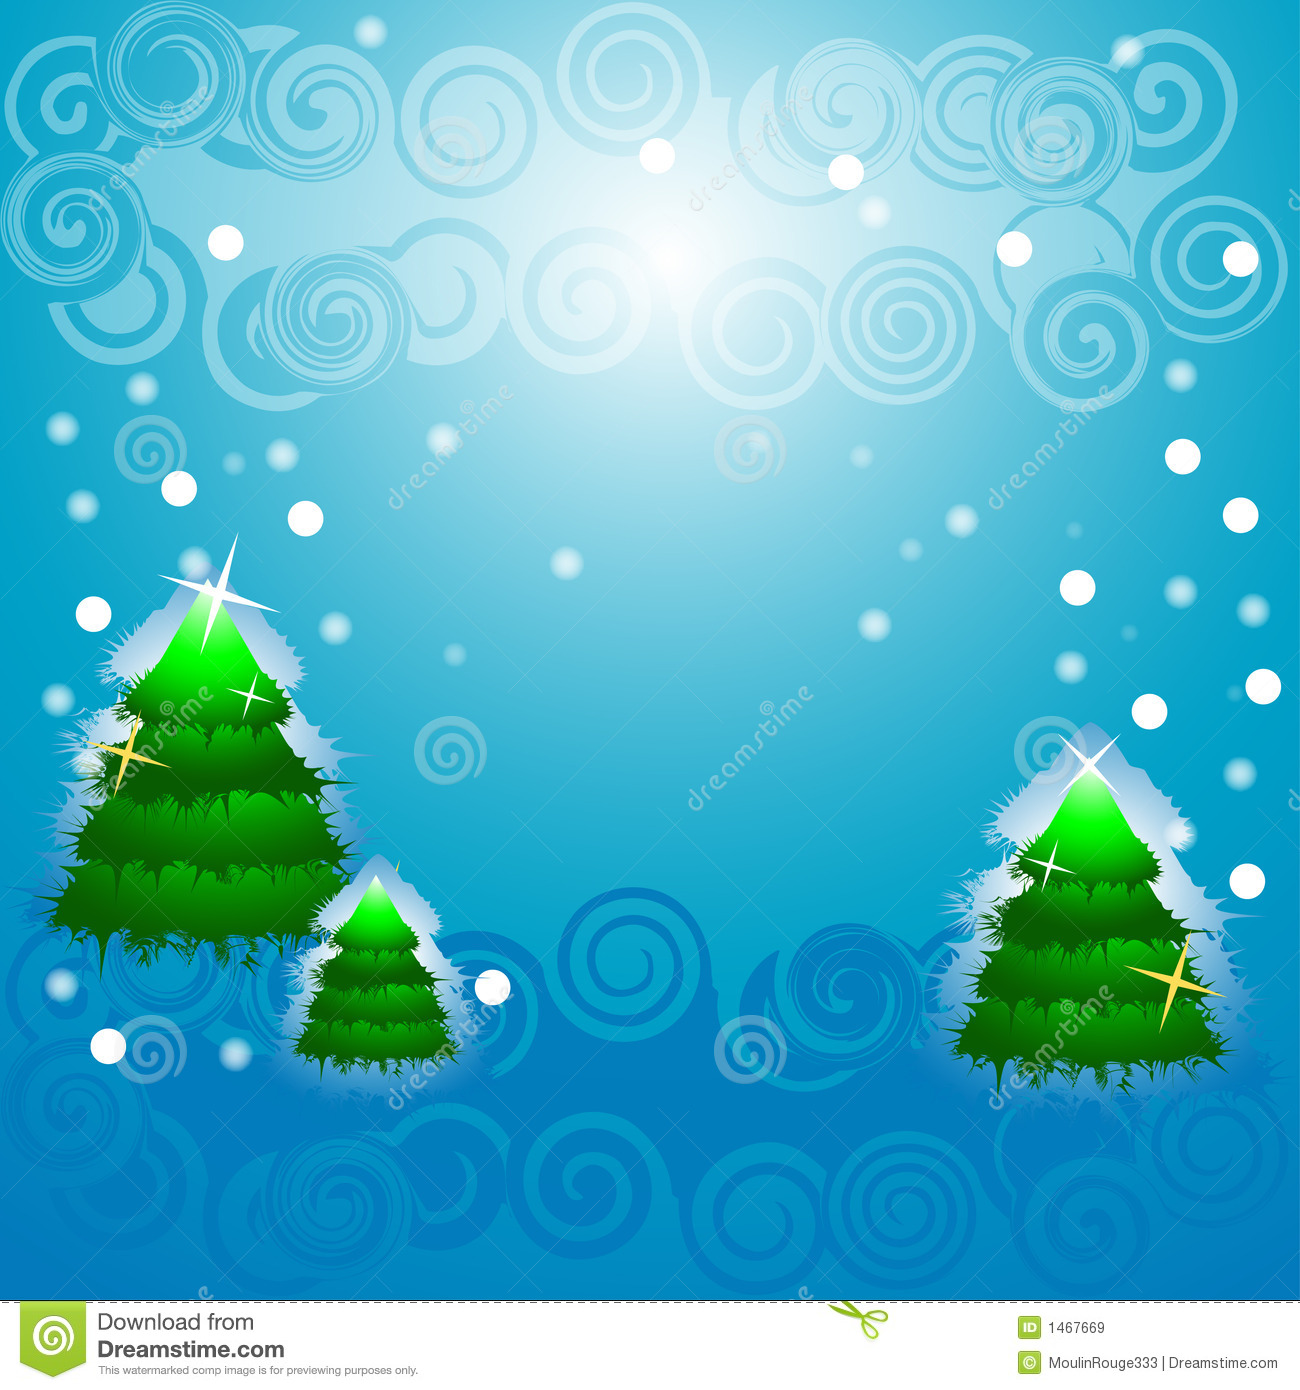 Christmas Tree Blinking Snow Royalty Free Stock Images   Image